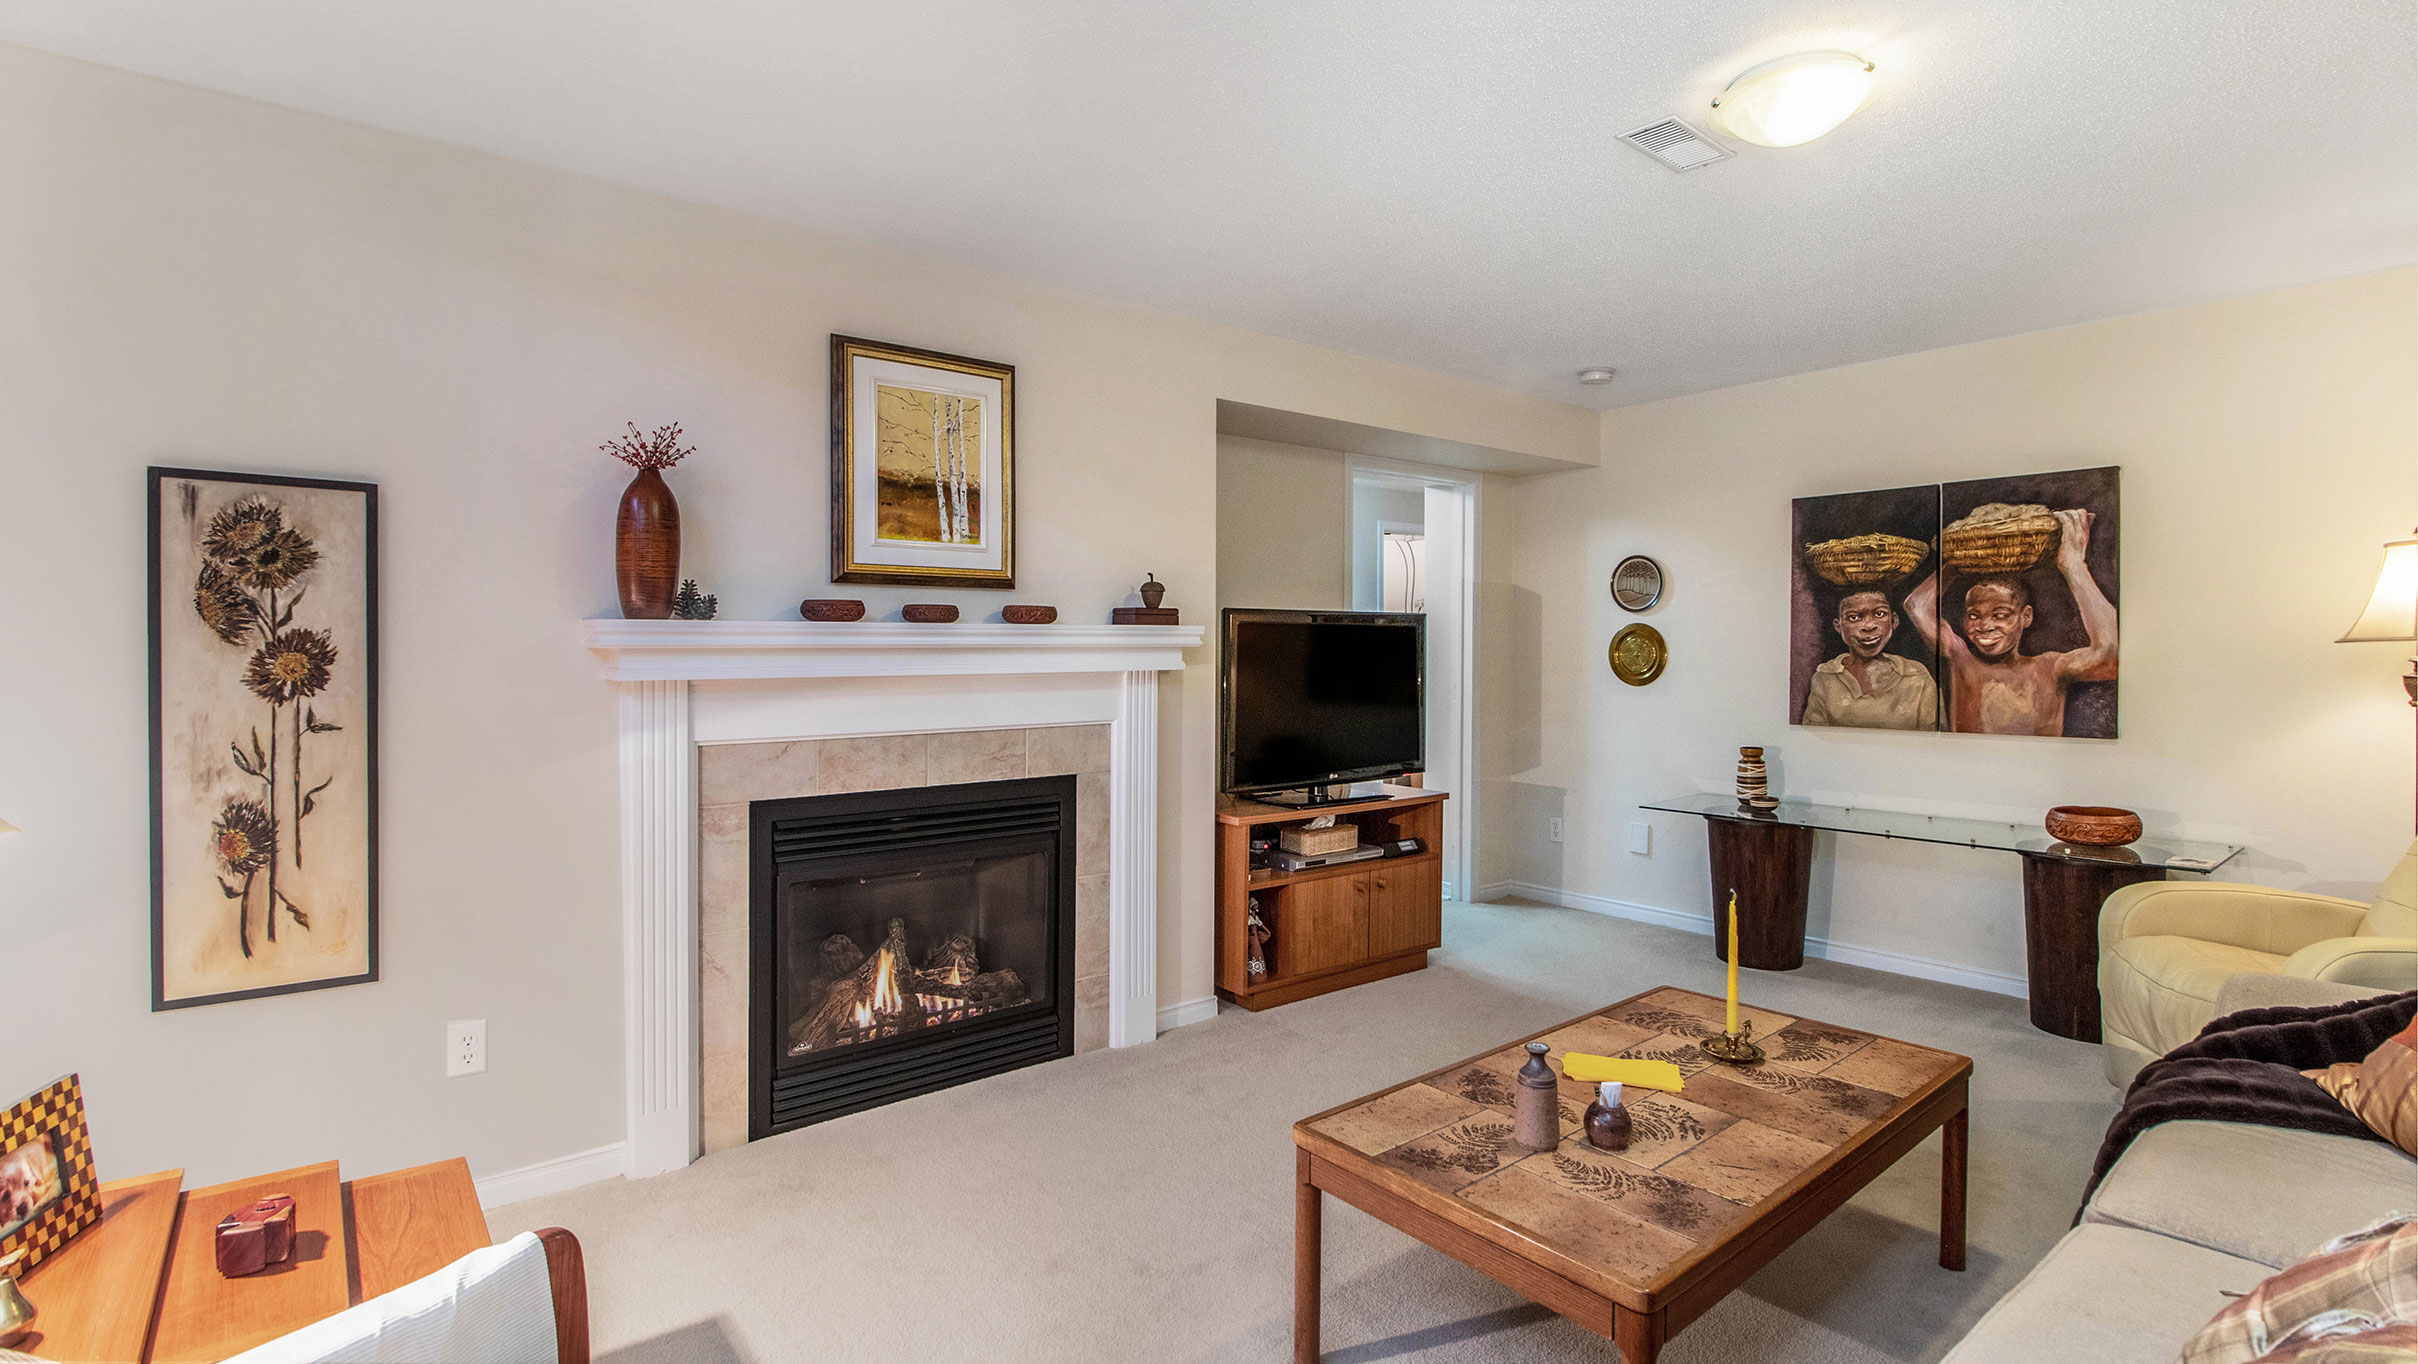 Located in the lower level, this family room is as cozy as they come with an open staircase allowing the natural light to pour through, as well as plush carpets and a natural gas fireplace for added warmth and ambianc